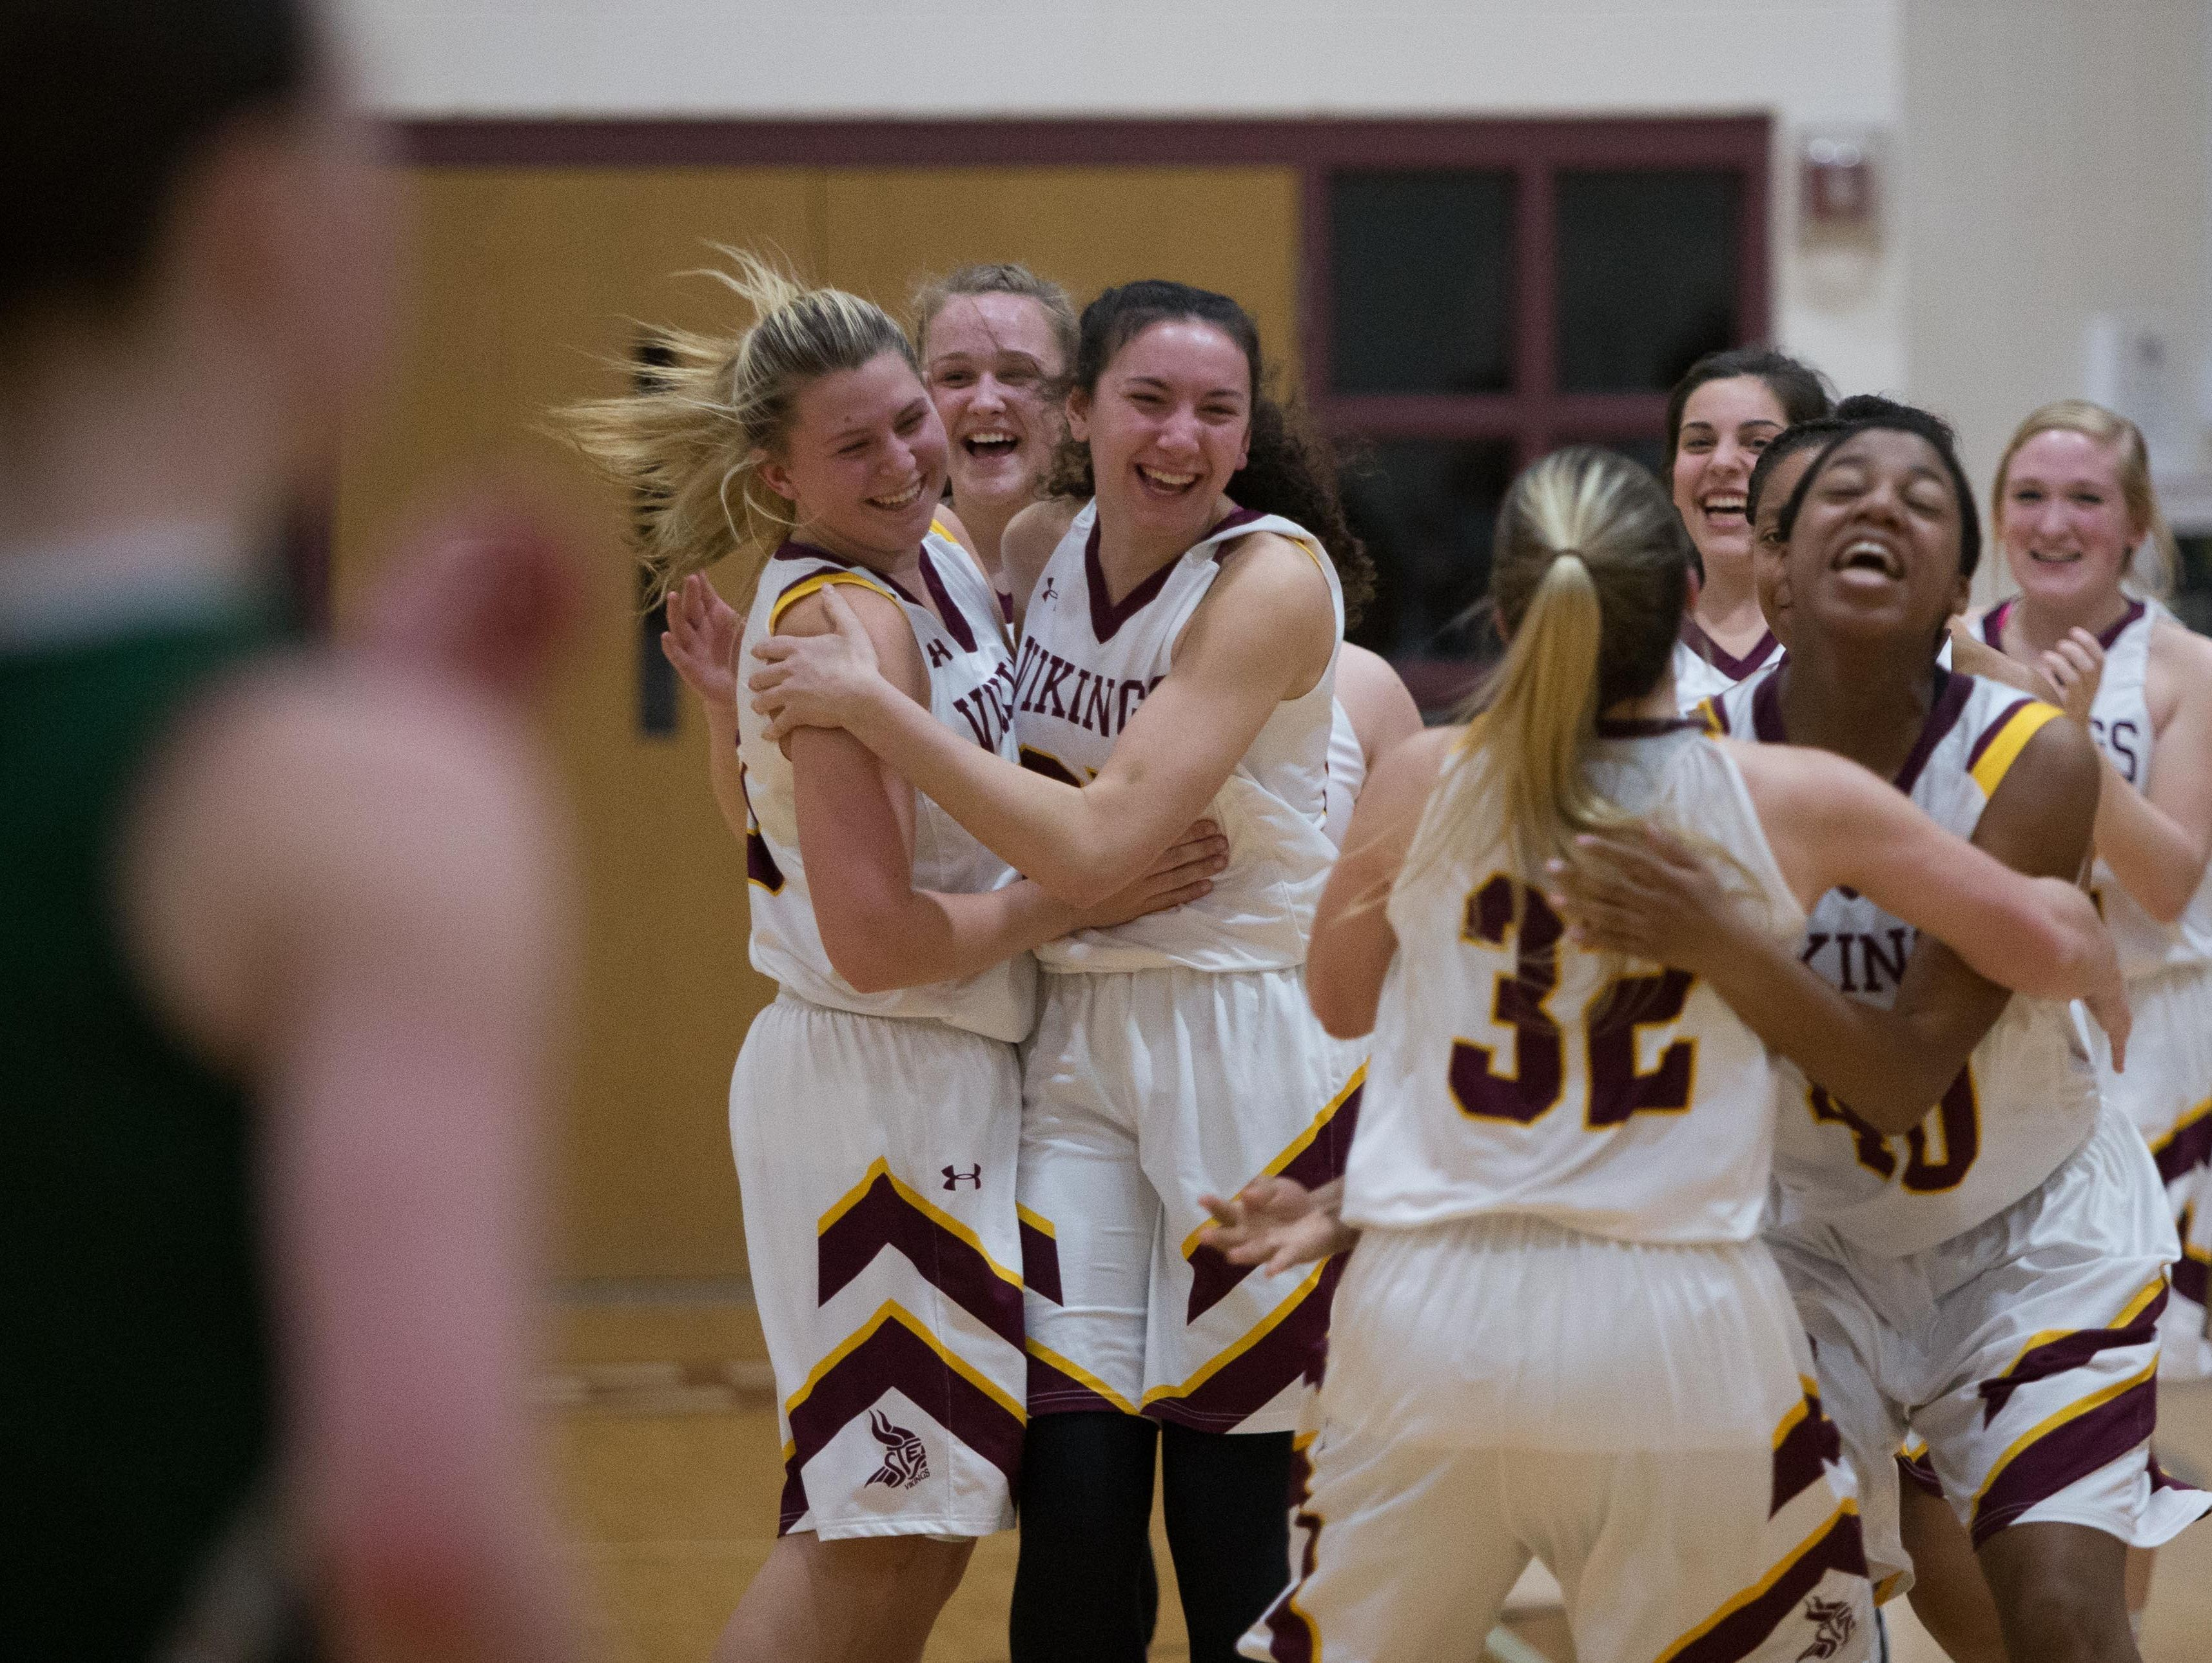 St. Elizabeth defeats Archmere 49-42 in the second round of the DIAA state girls basketball tournament at St. Elizabeth Thursday.